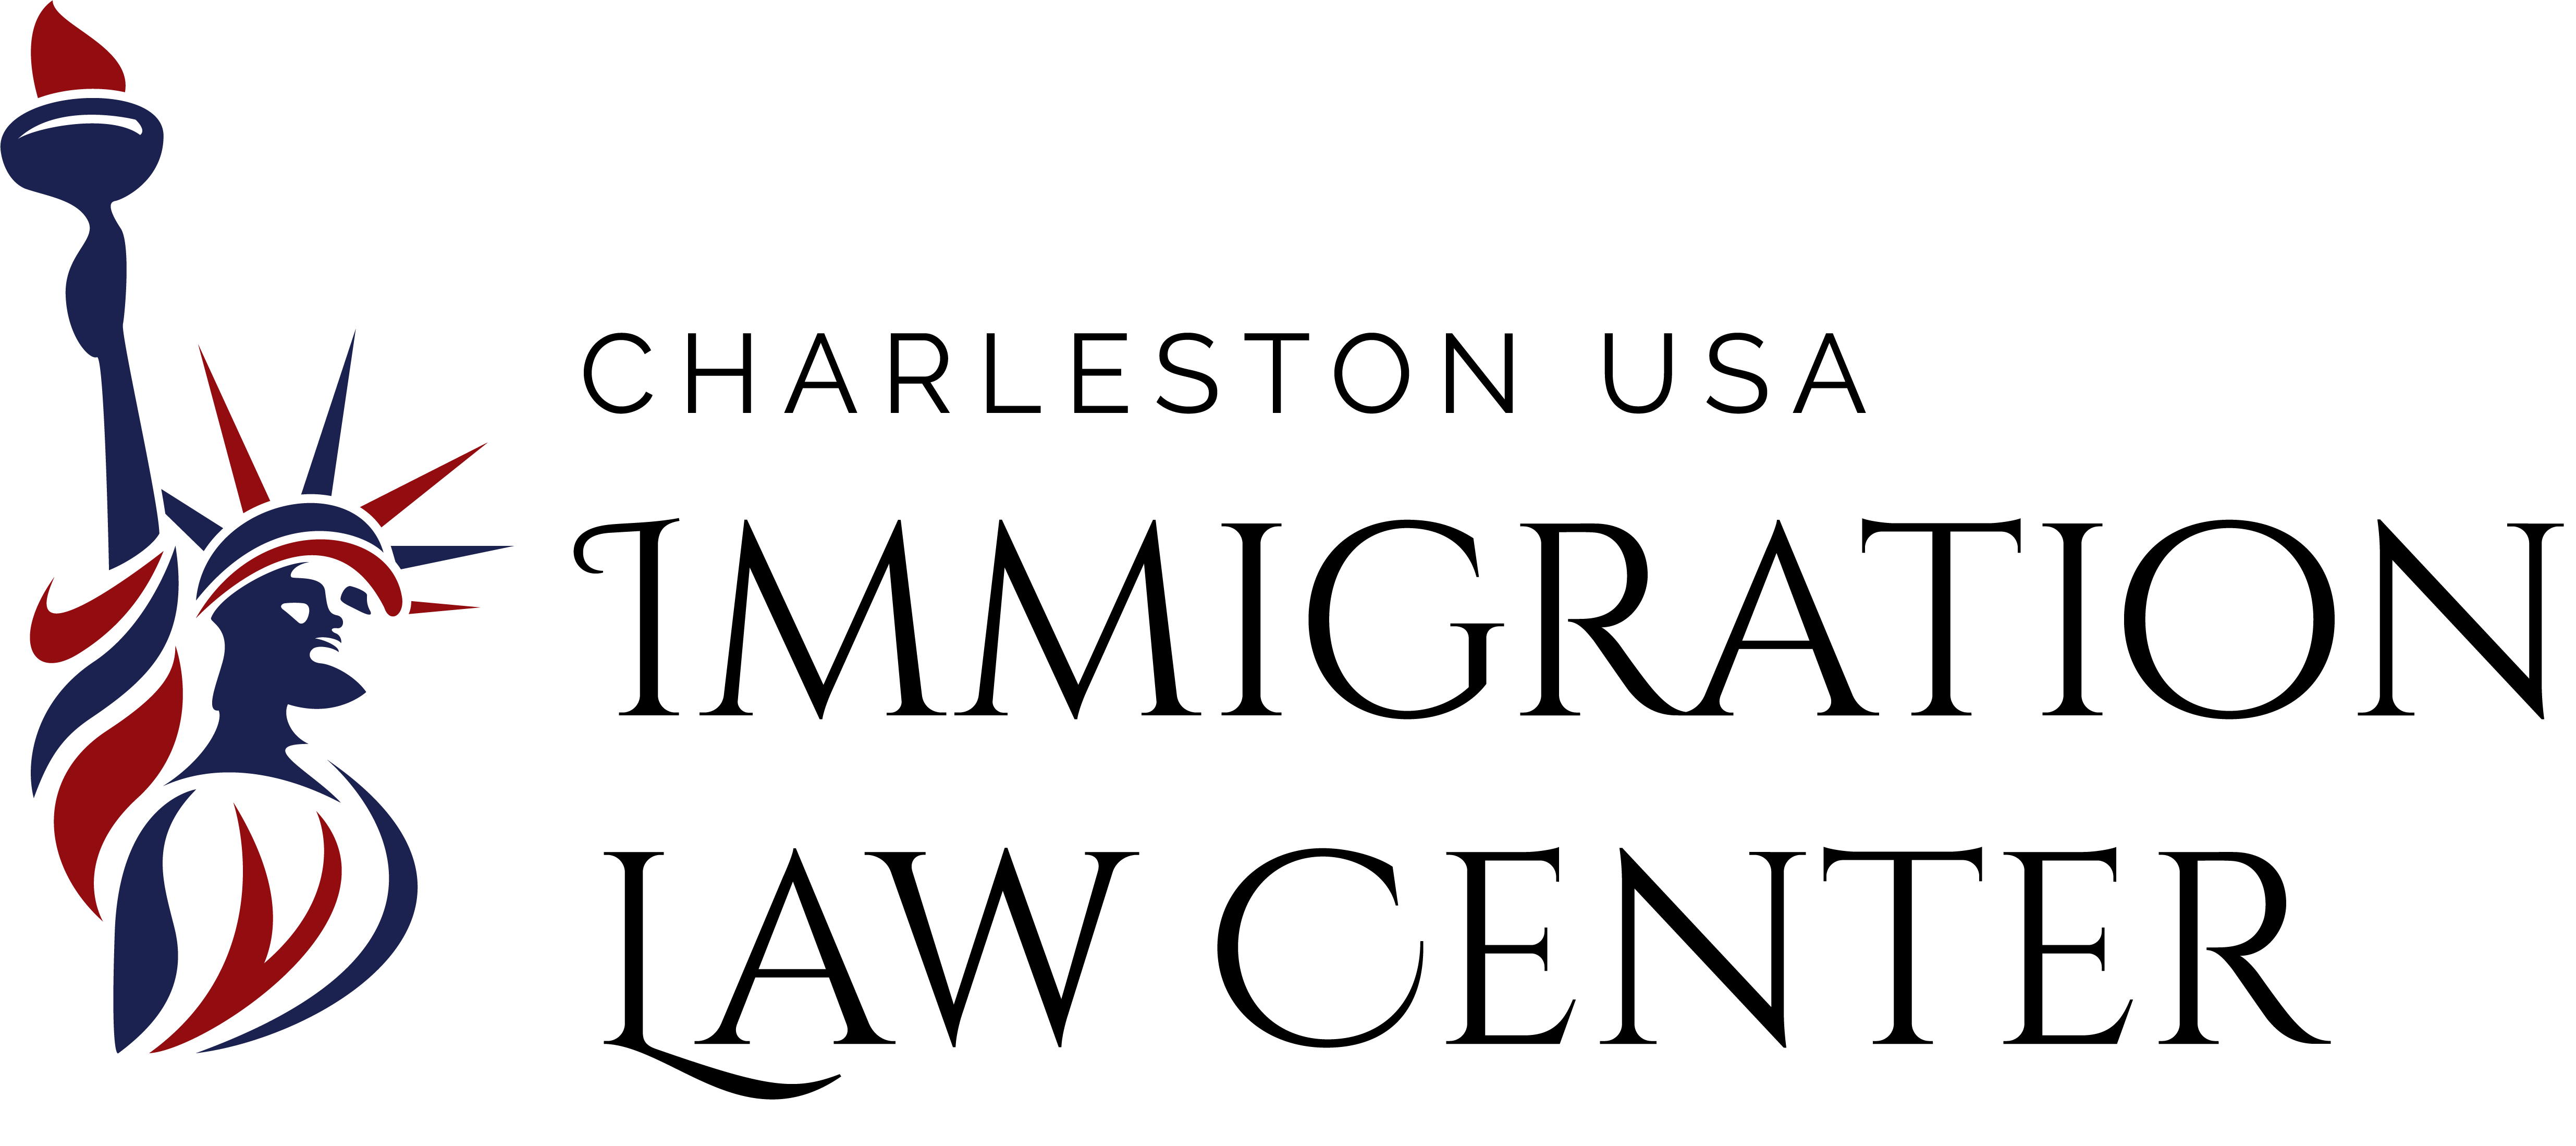 Charleston USA Immigration Law Center, LLP